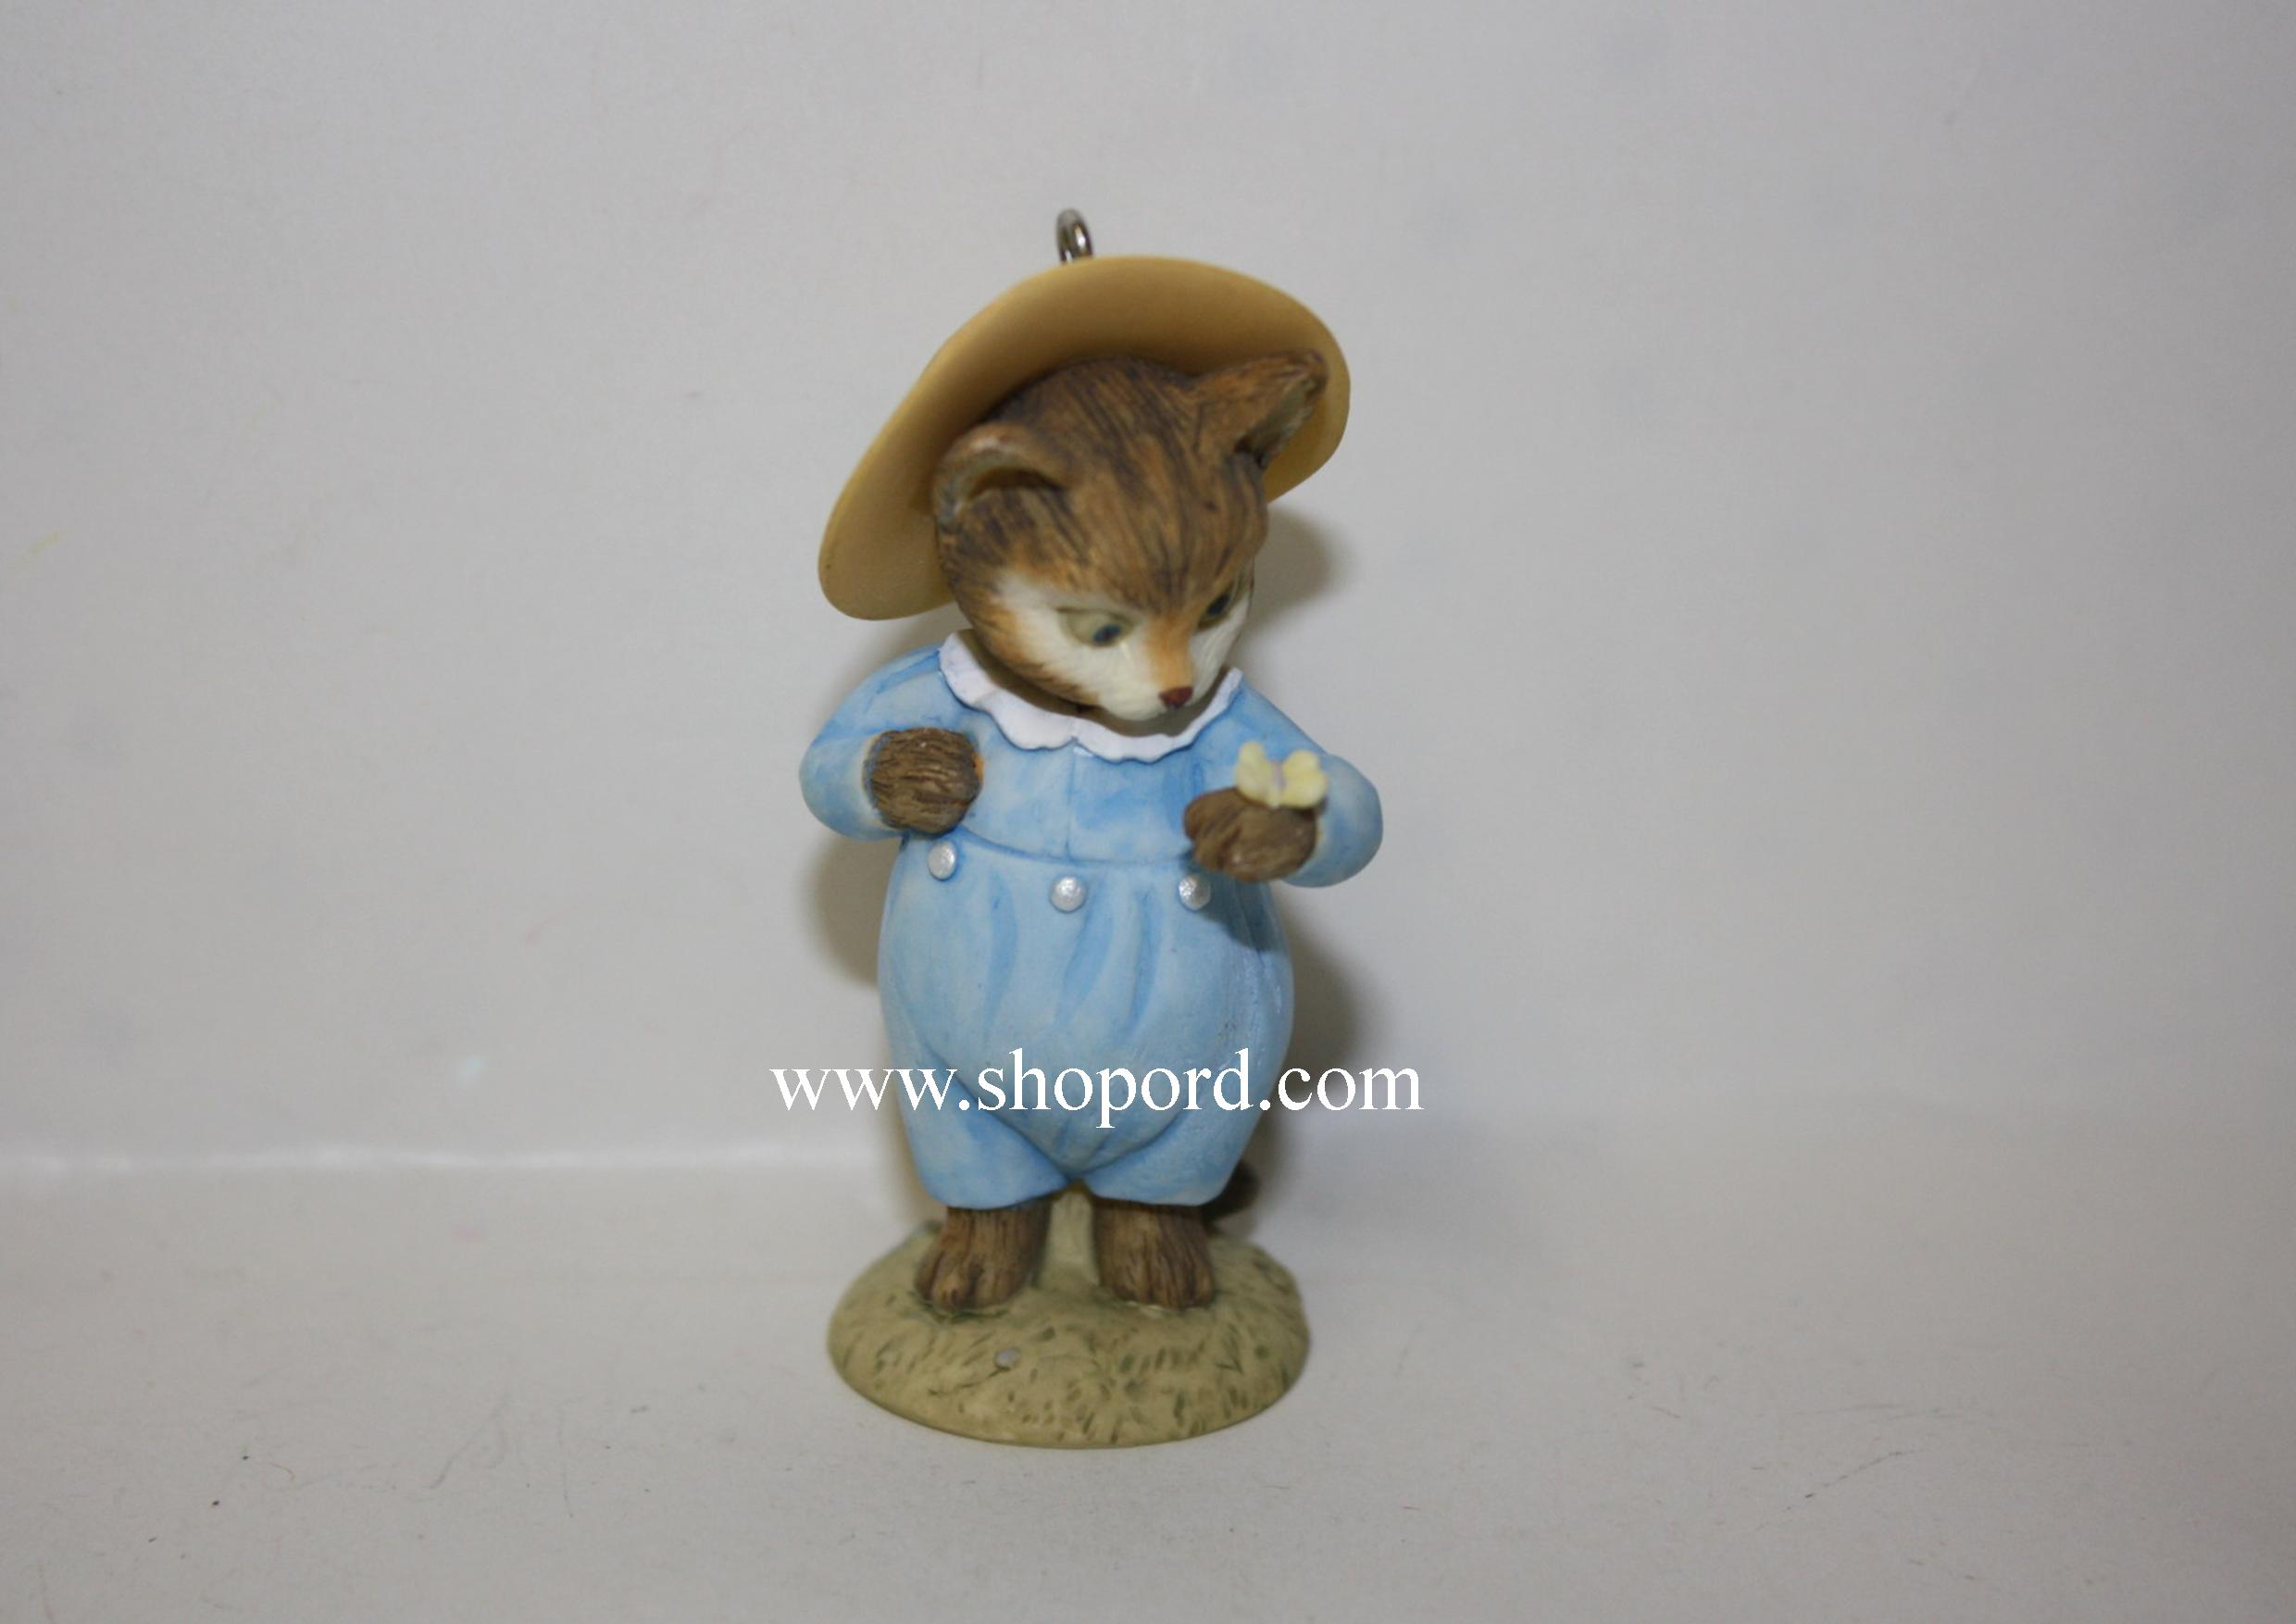 Hallmark 1999 Tom Kitten Beatrix Potter Spring Ornament 4th In Series QEO8329 Damaged Box